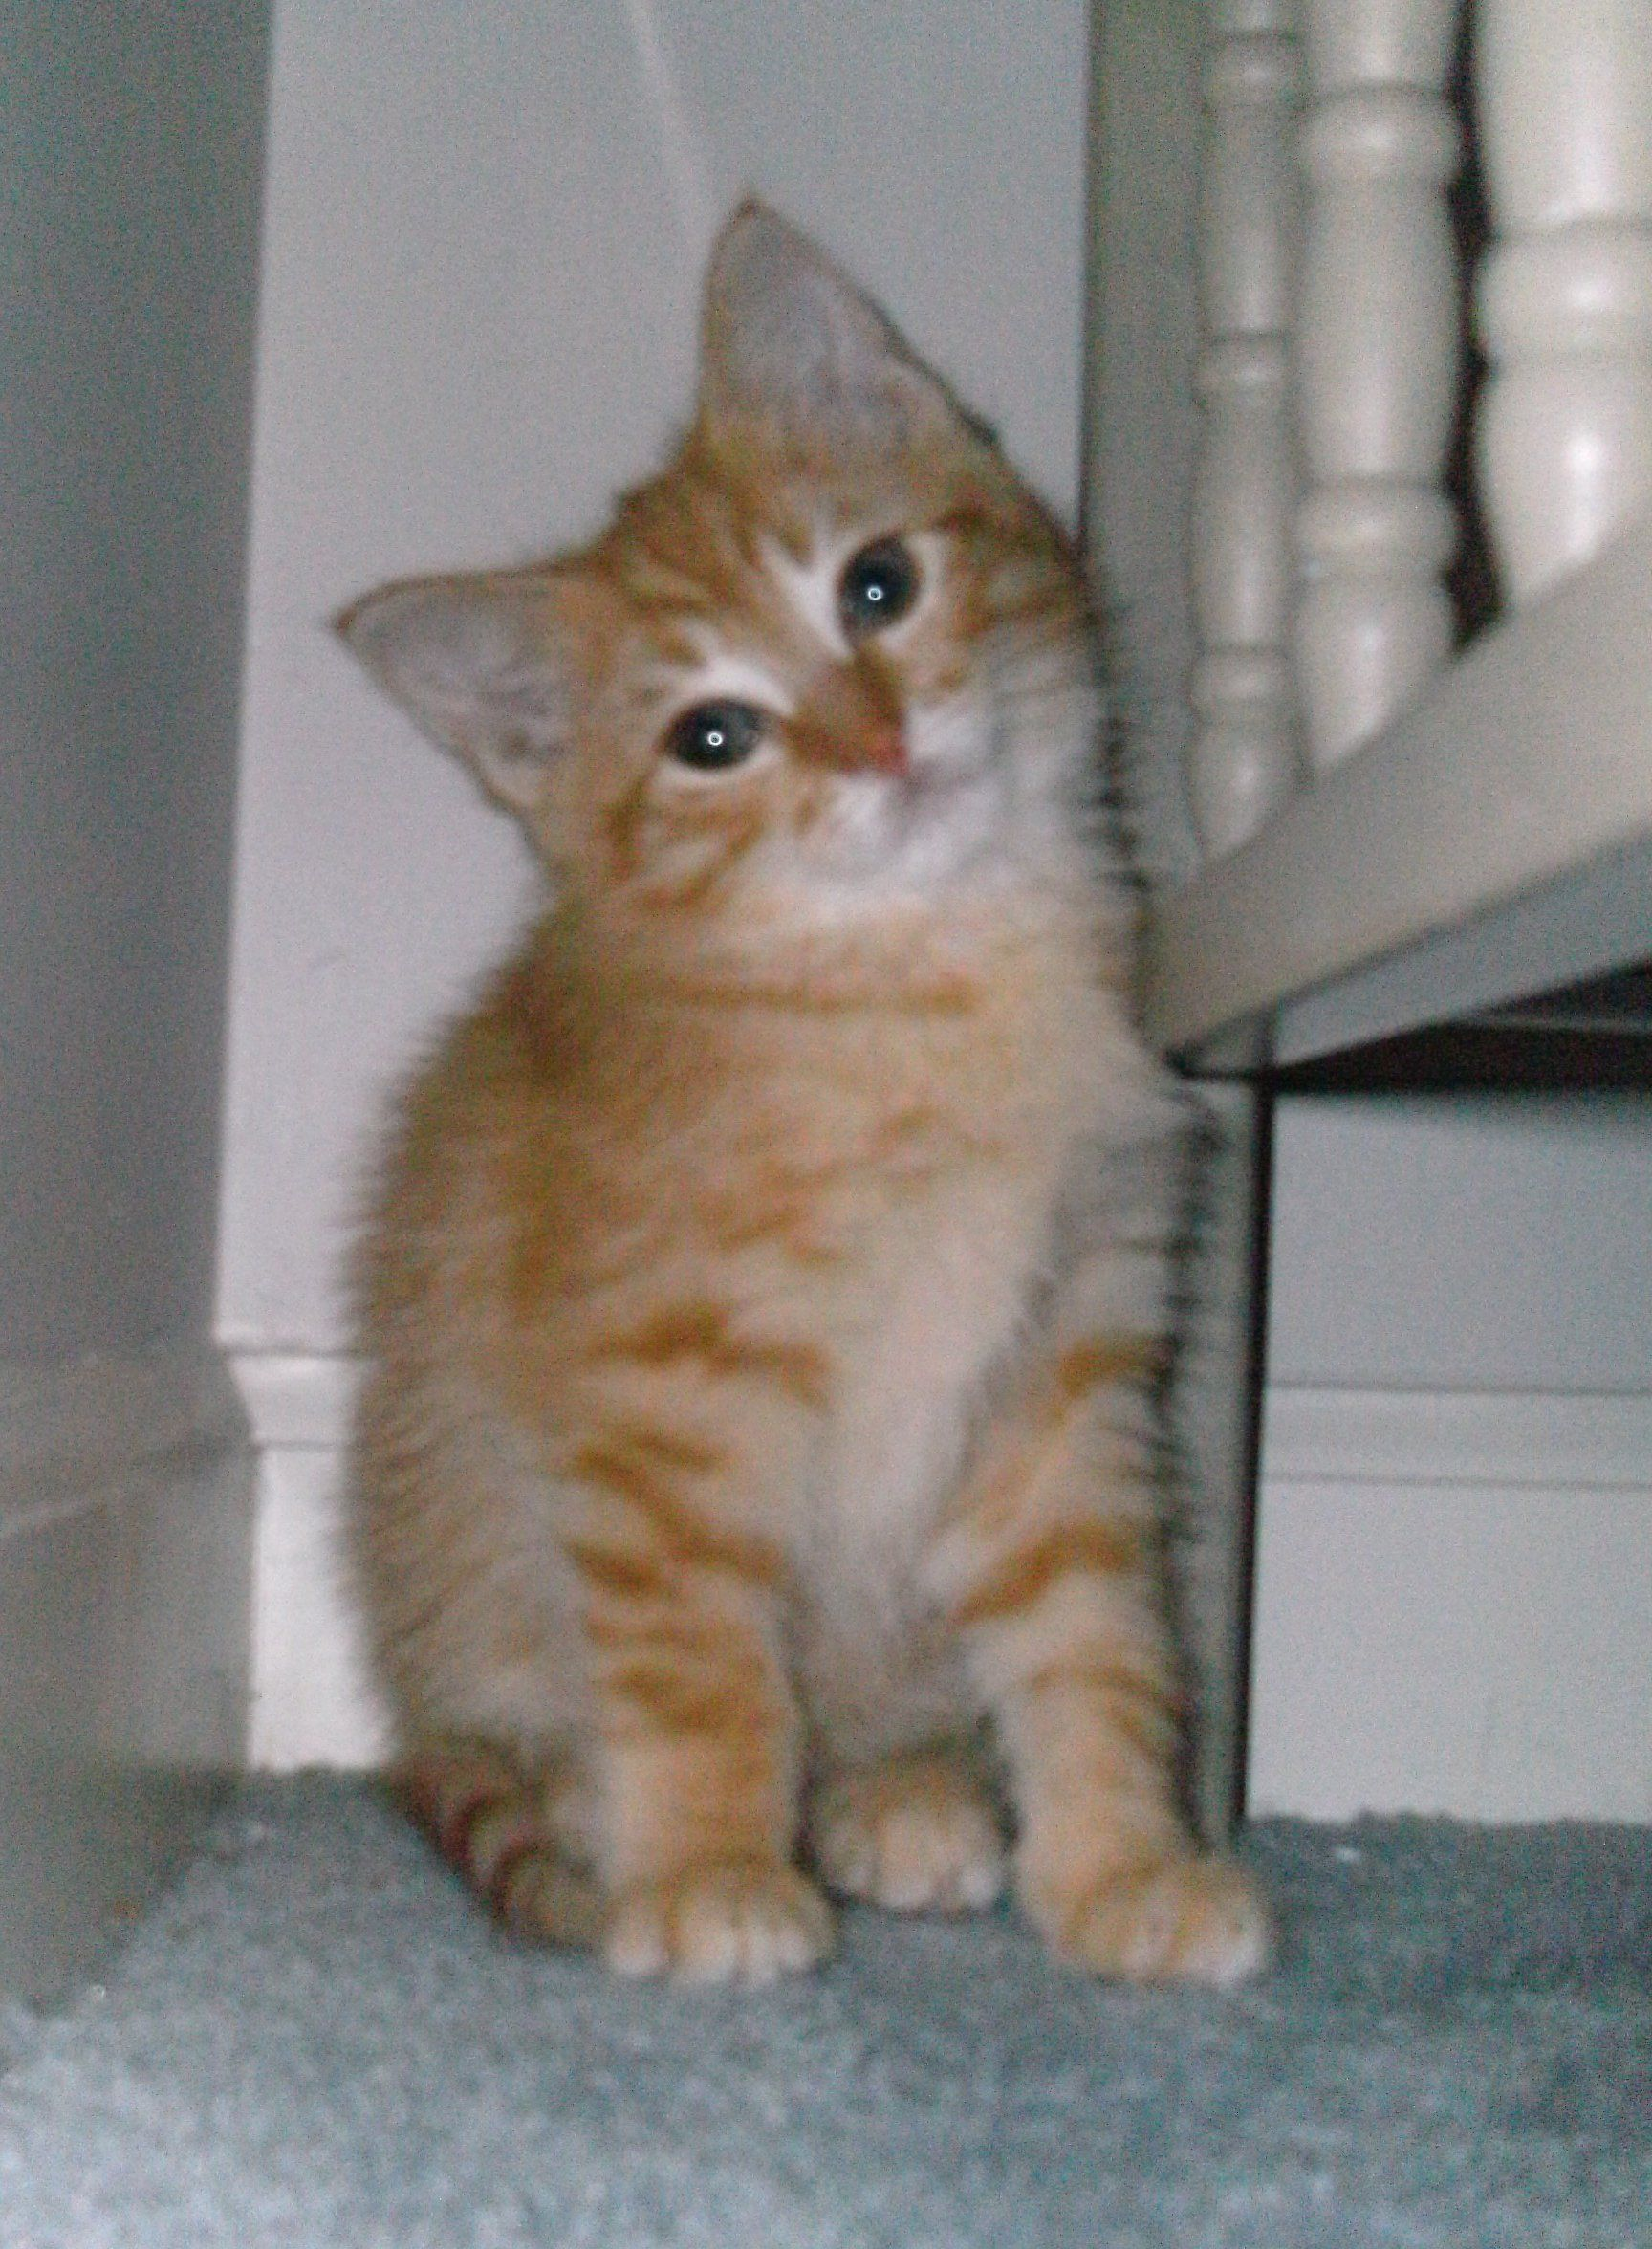 ADOPTED 5/19/12Noah here. I'm available for adoption too